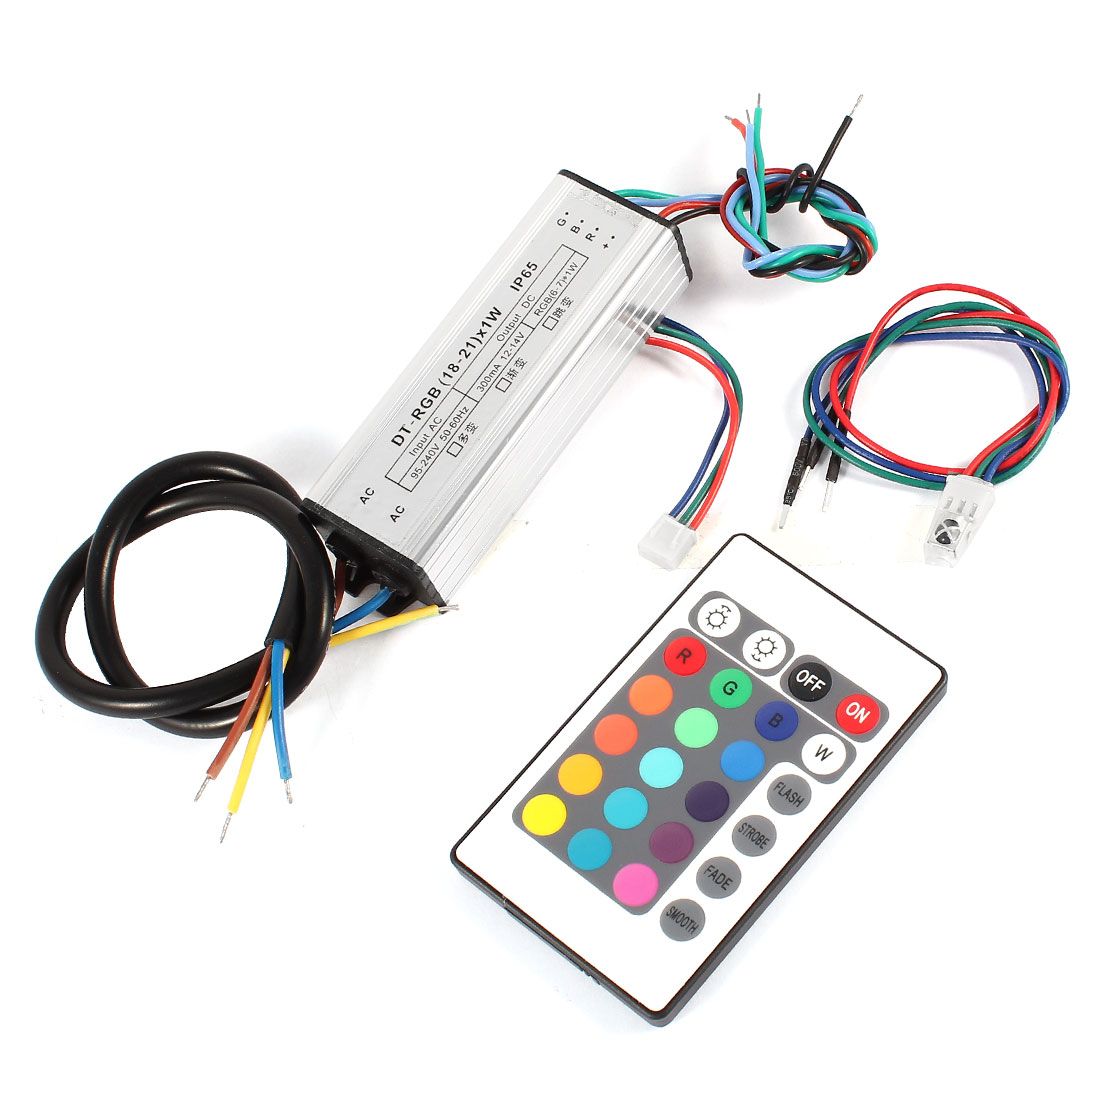 (18-21)x1W LED Driver Current Source Converter w RGB Remote Control